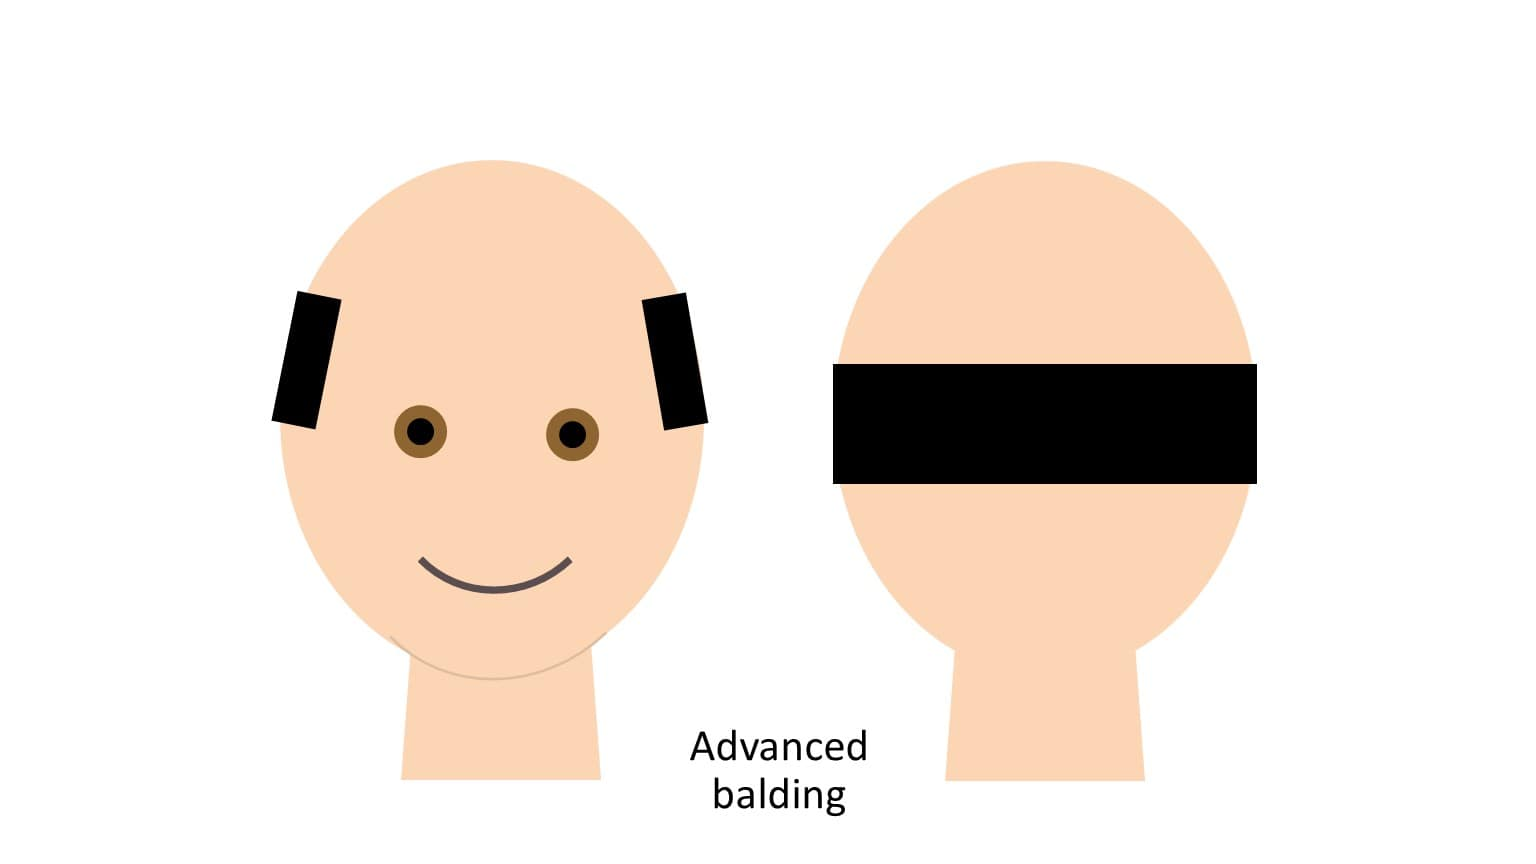 FUE hair transplant for advanced balding